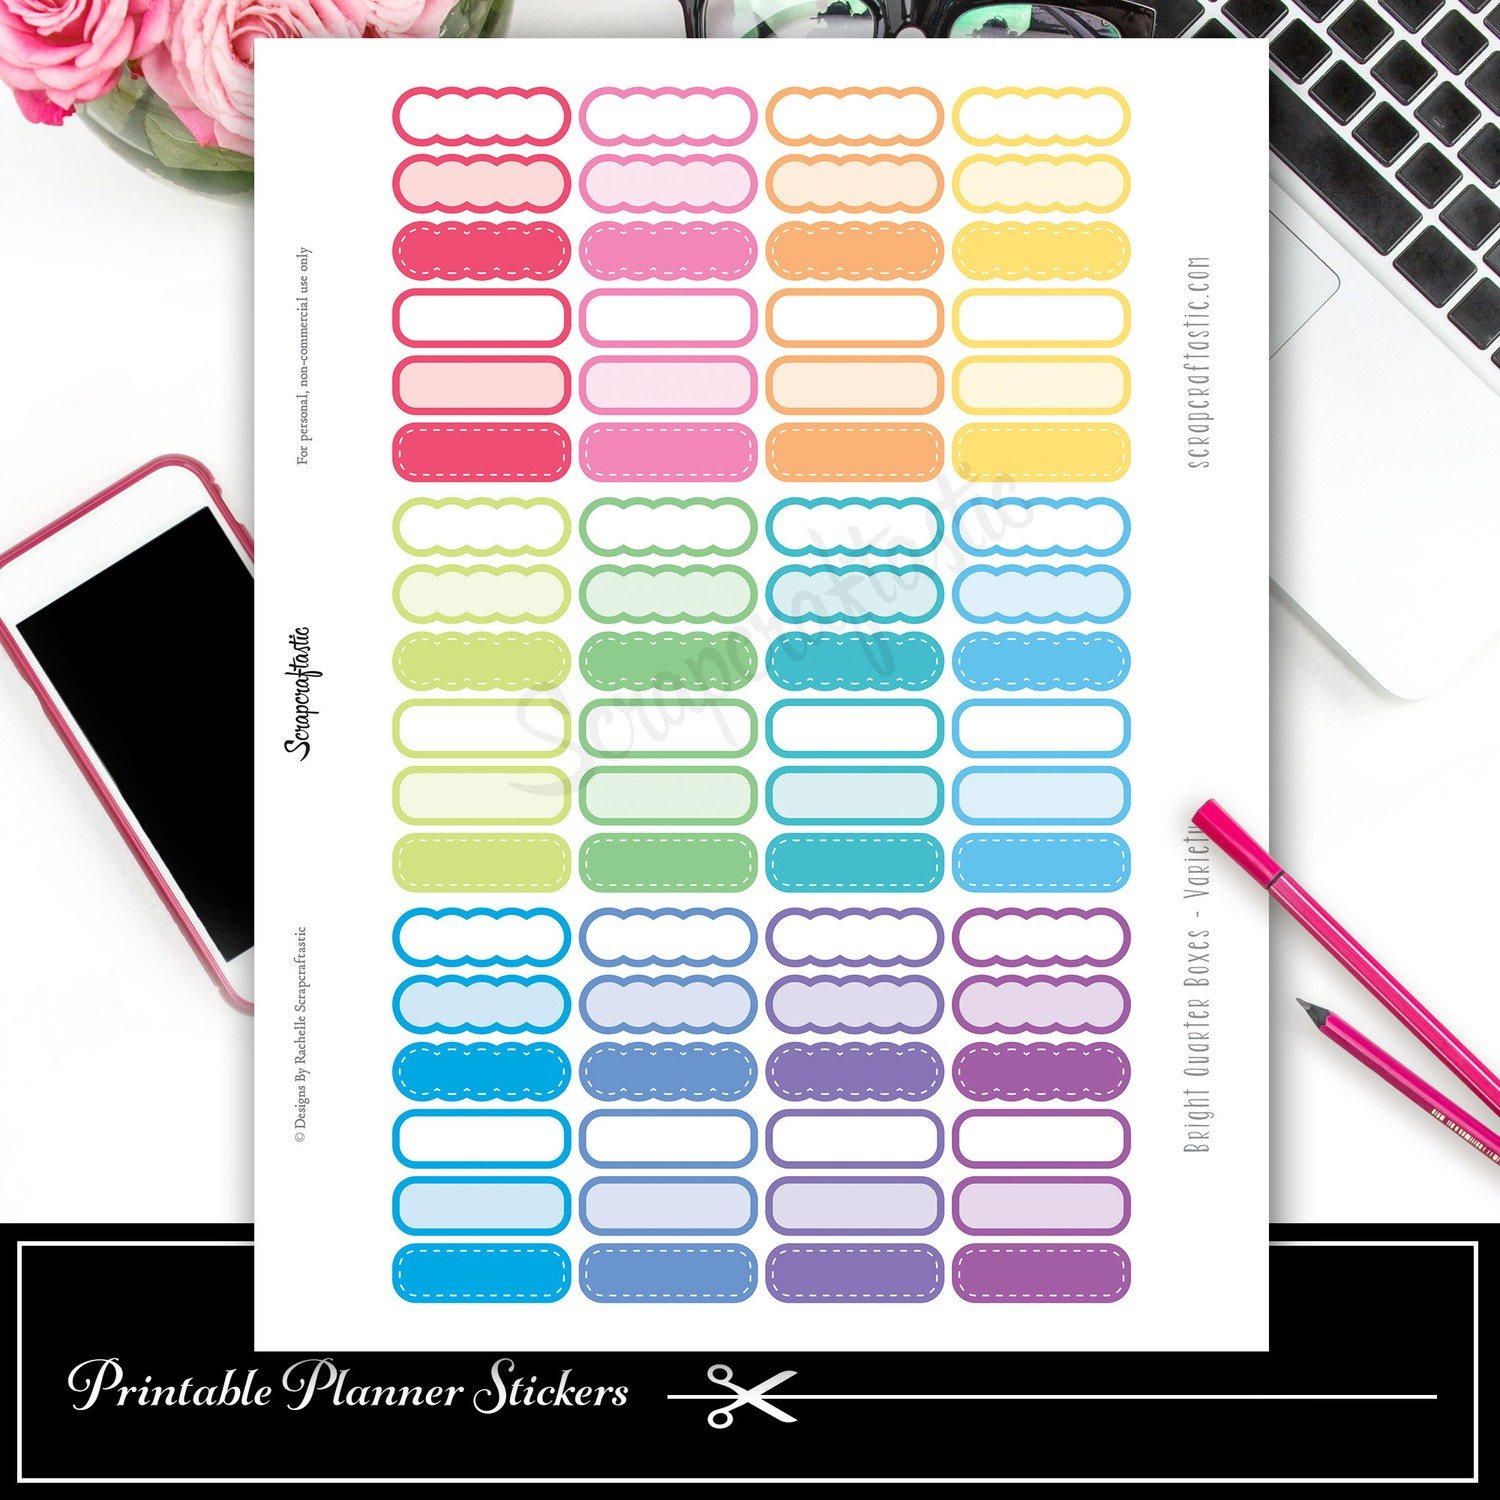 Scallop Brights Variety Quarter Box Printable Planner Stickers and Silhouette Cut File